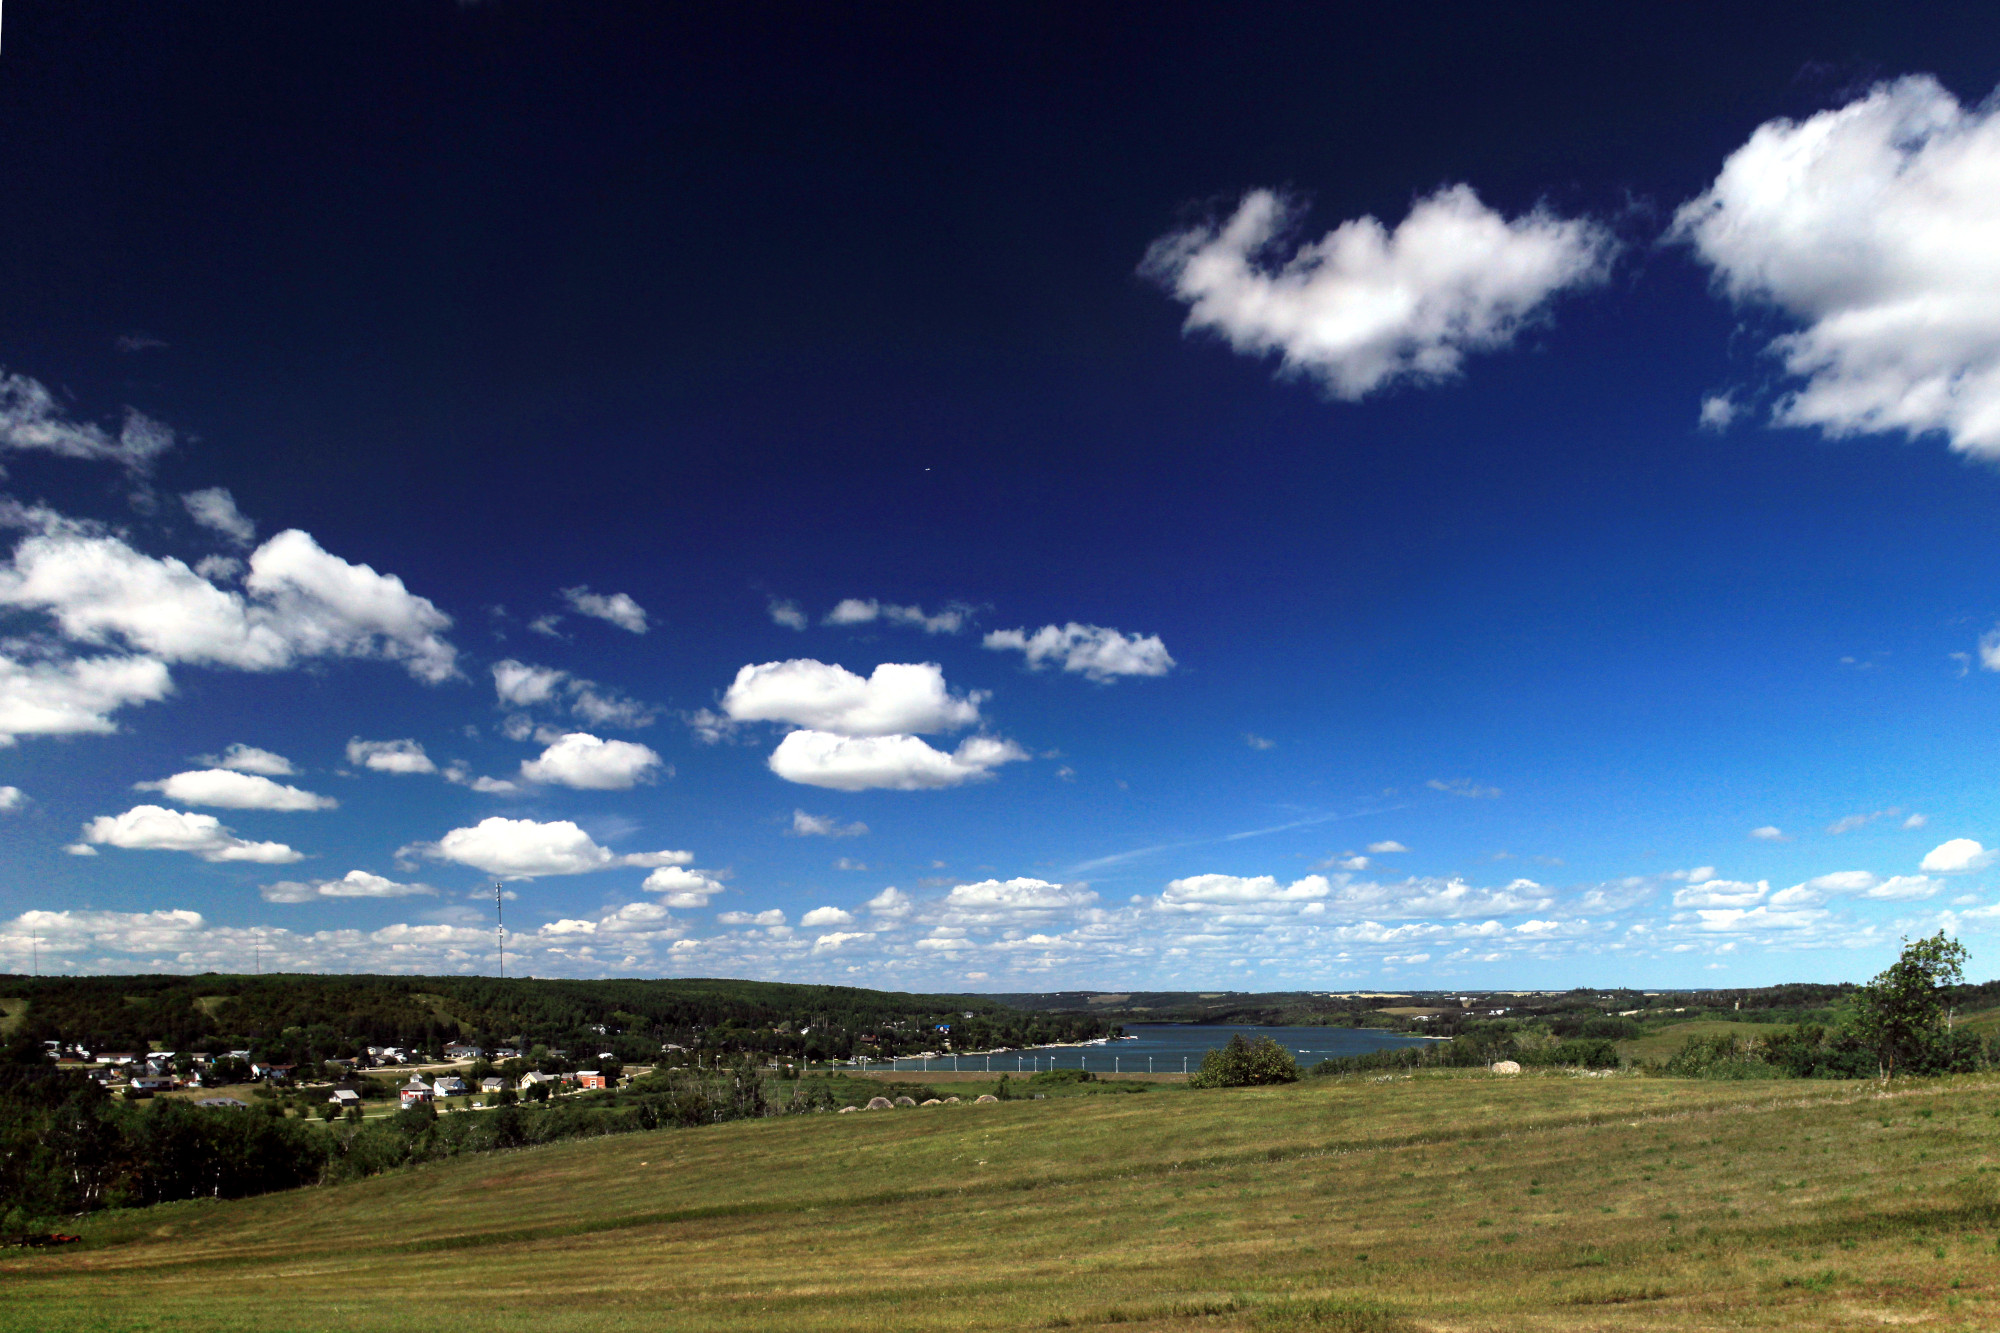 Panorama: the lake and the pioneer village